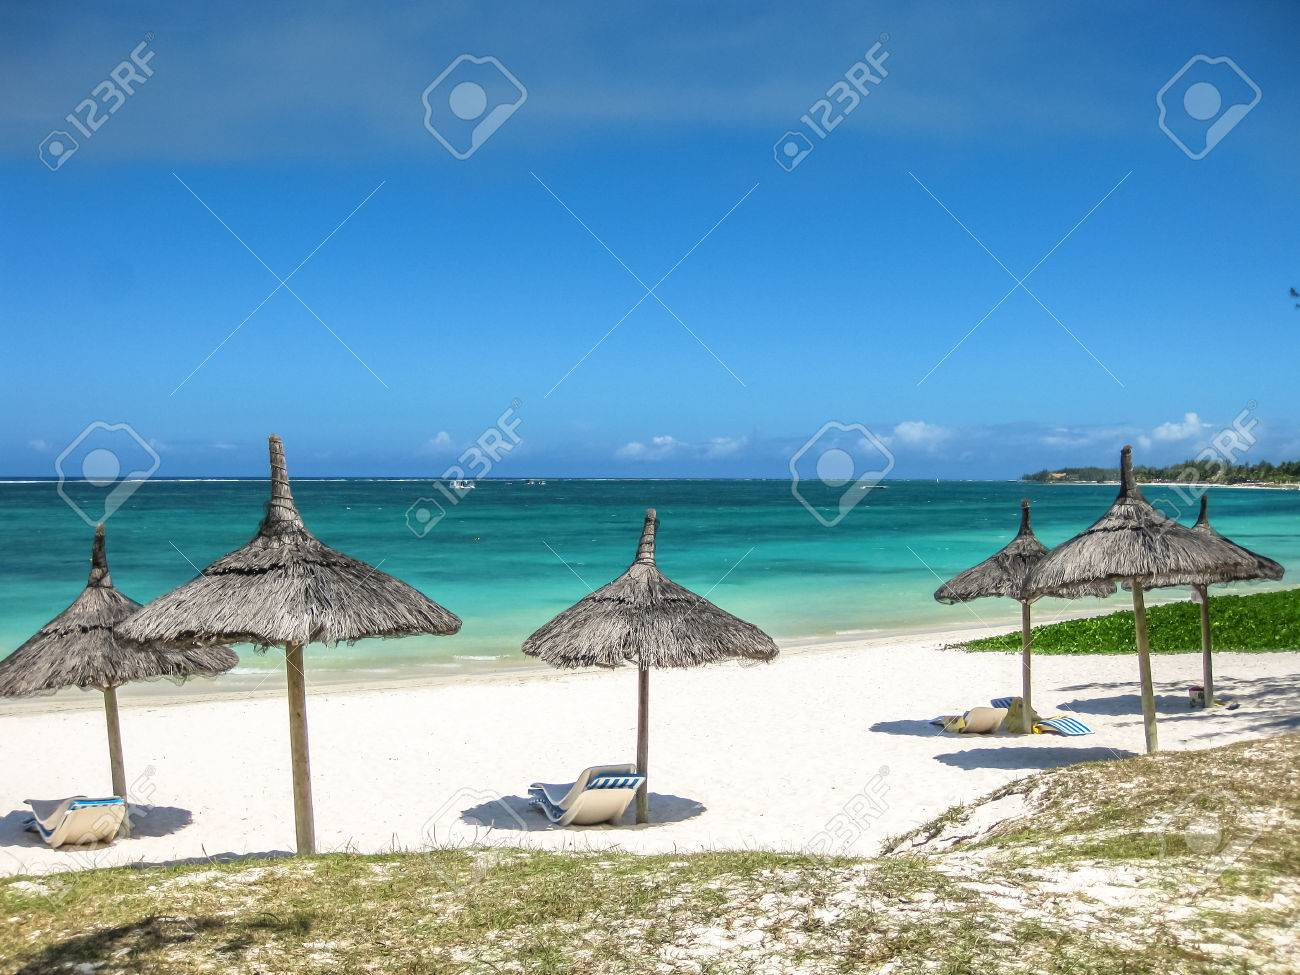 Thatch palapa umbrellas in the famous Belle Mare Beach, Mauritius, Indian Ocean, Africa. Stock Photo - 45589200